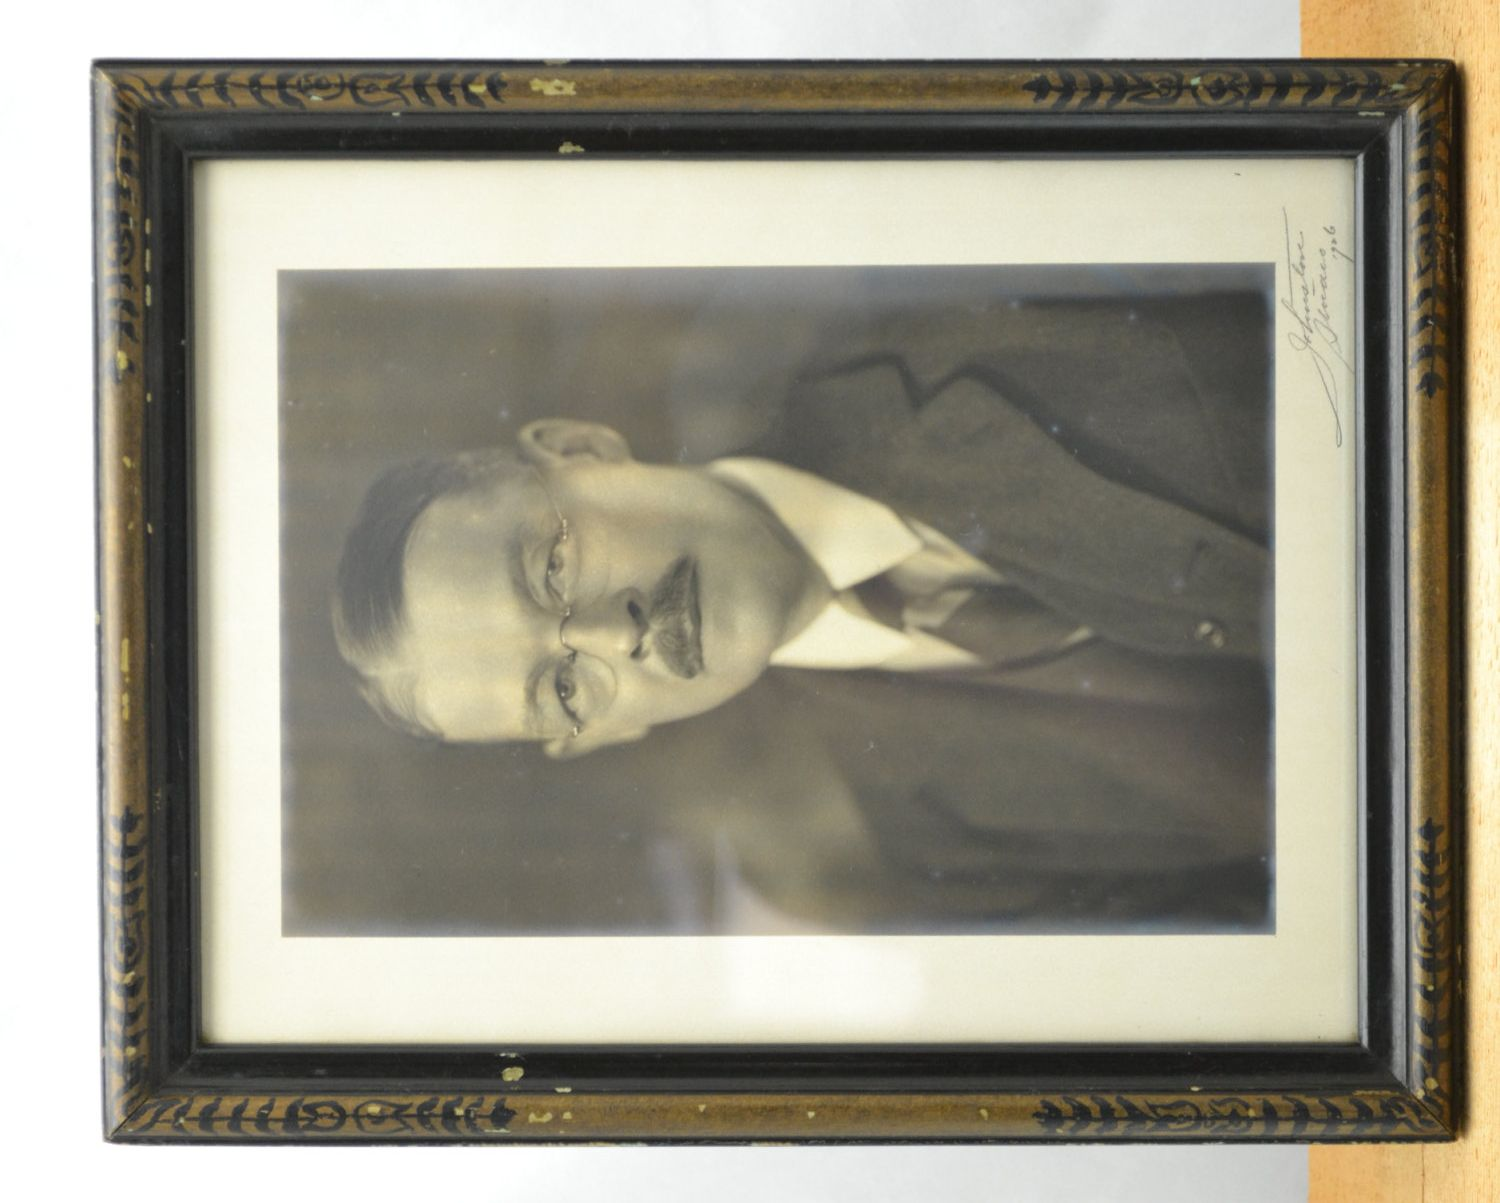 Vintage Signed 1920's Photograph of a Distinguished Man with Spectacles and Mustache, Framed by Joseph Horne Co., Antique, Glasses, Wood